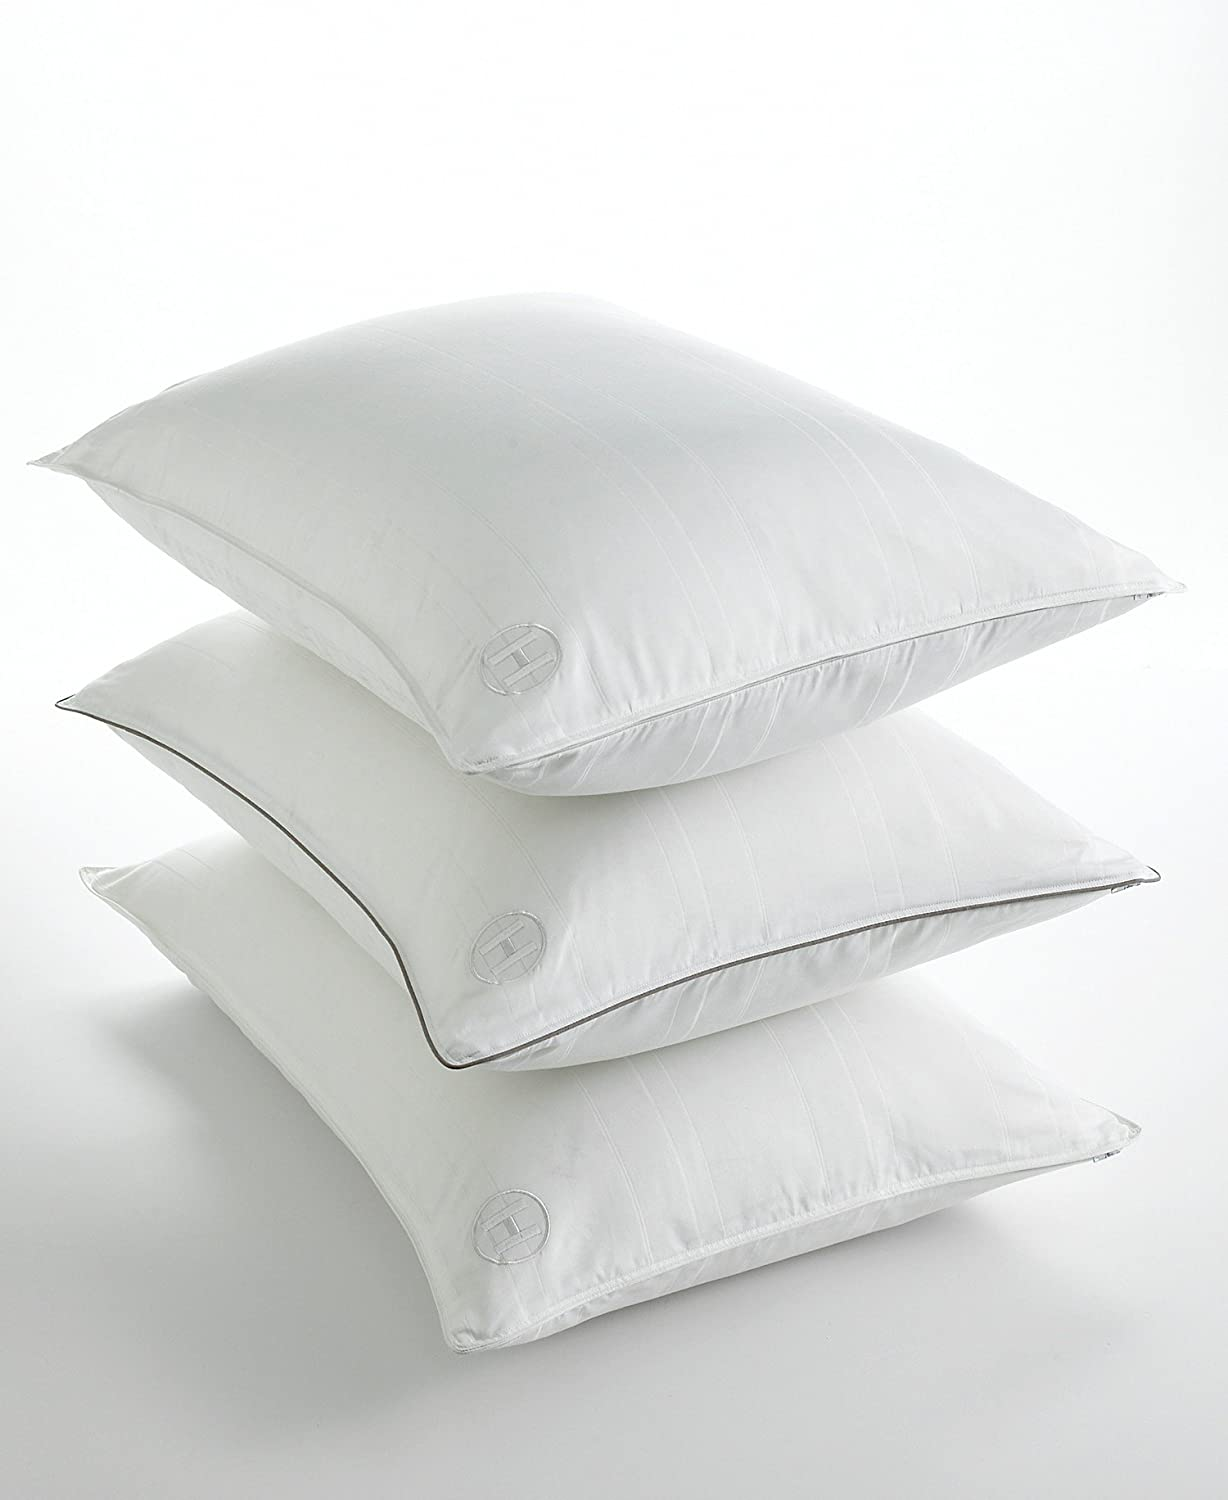 medium down online rsp john king size johnlewis synthetic pdp firm at pillow kingsize main buyjohn lewis like soft